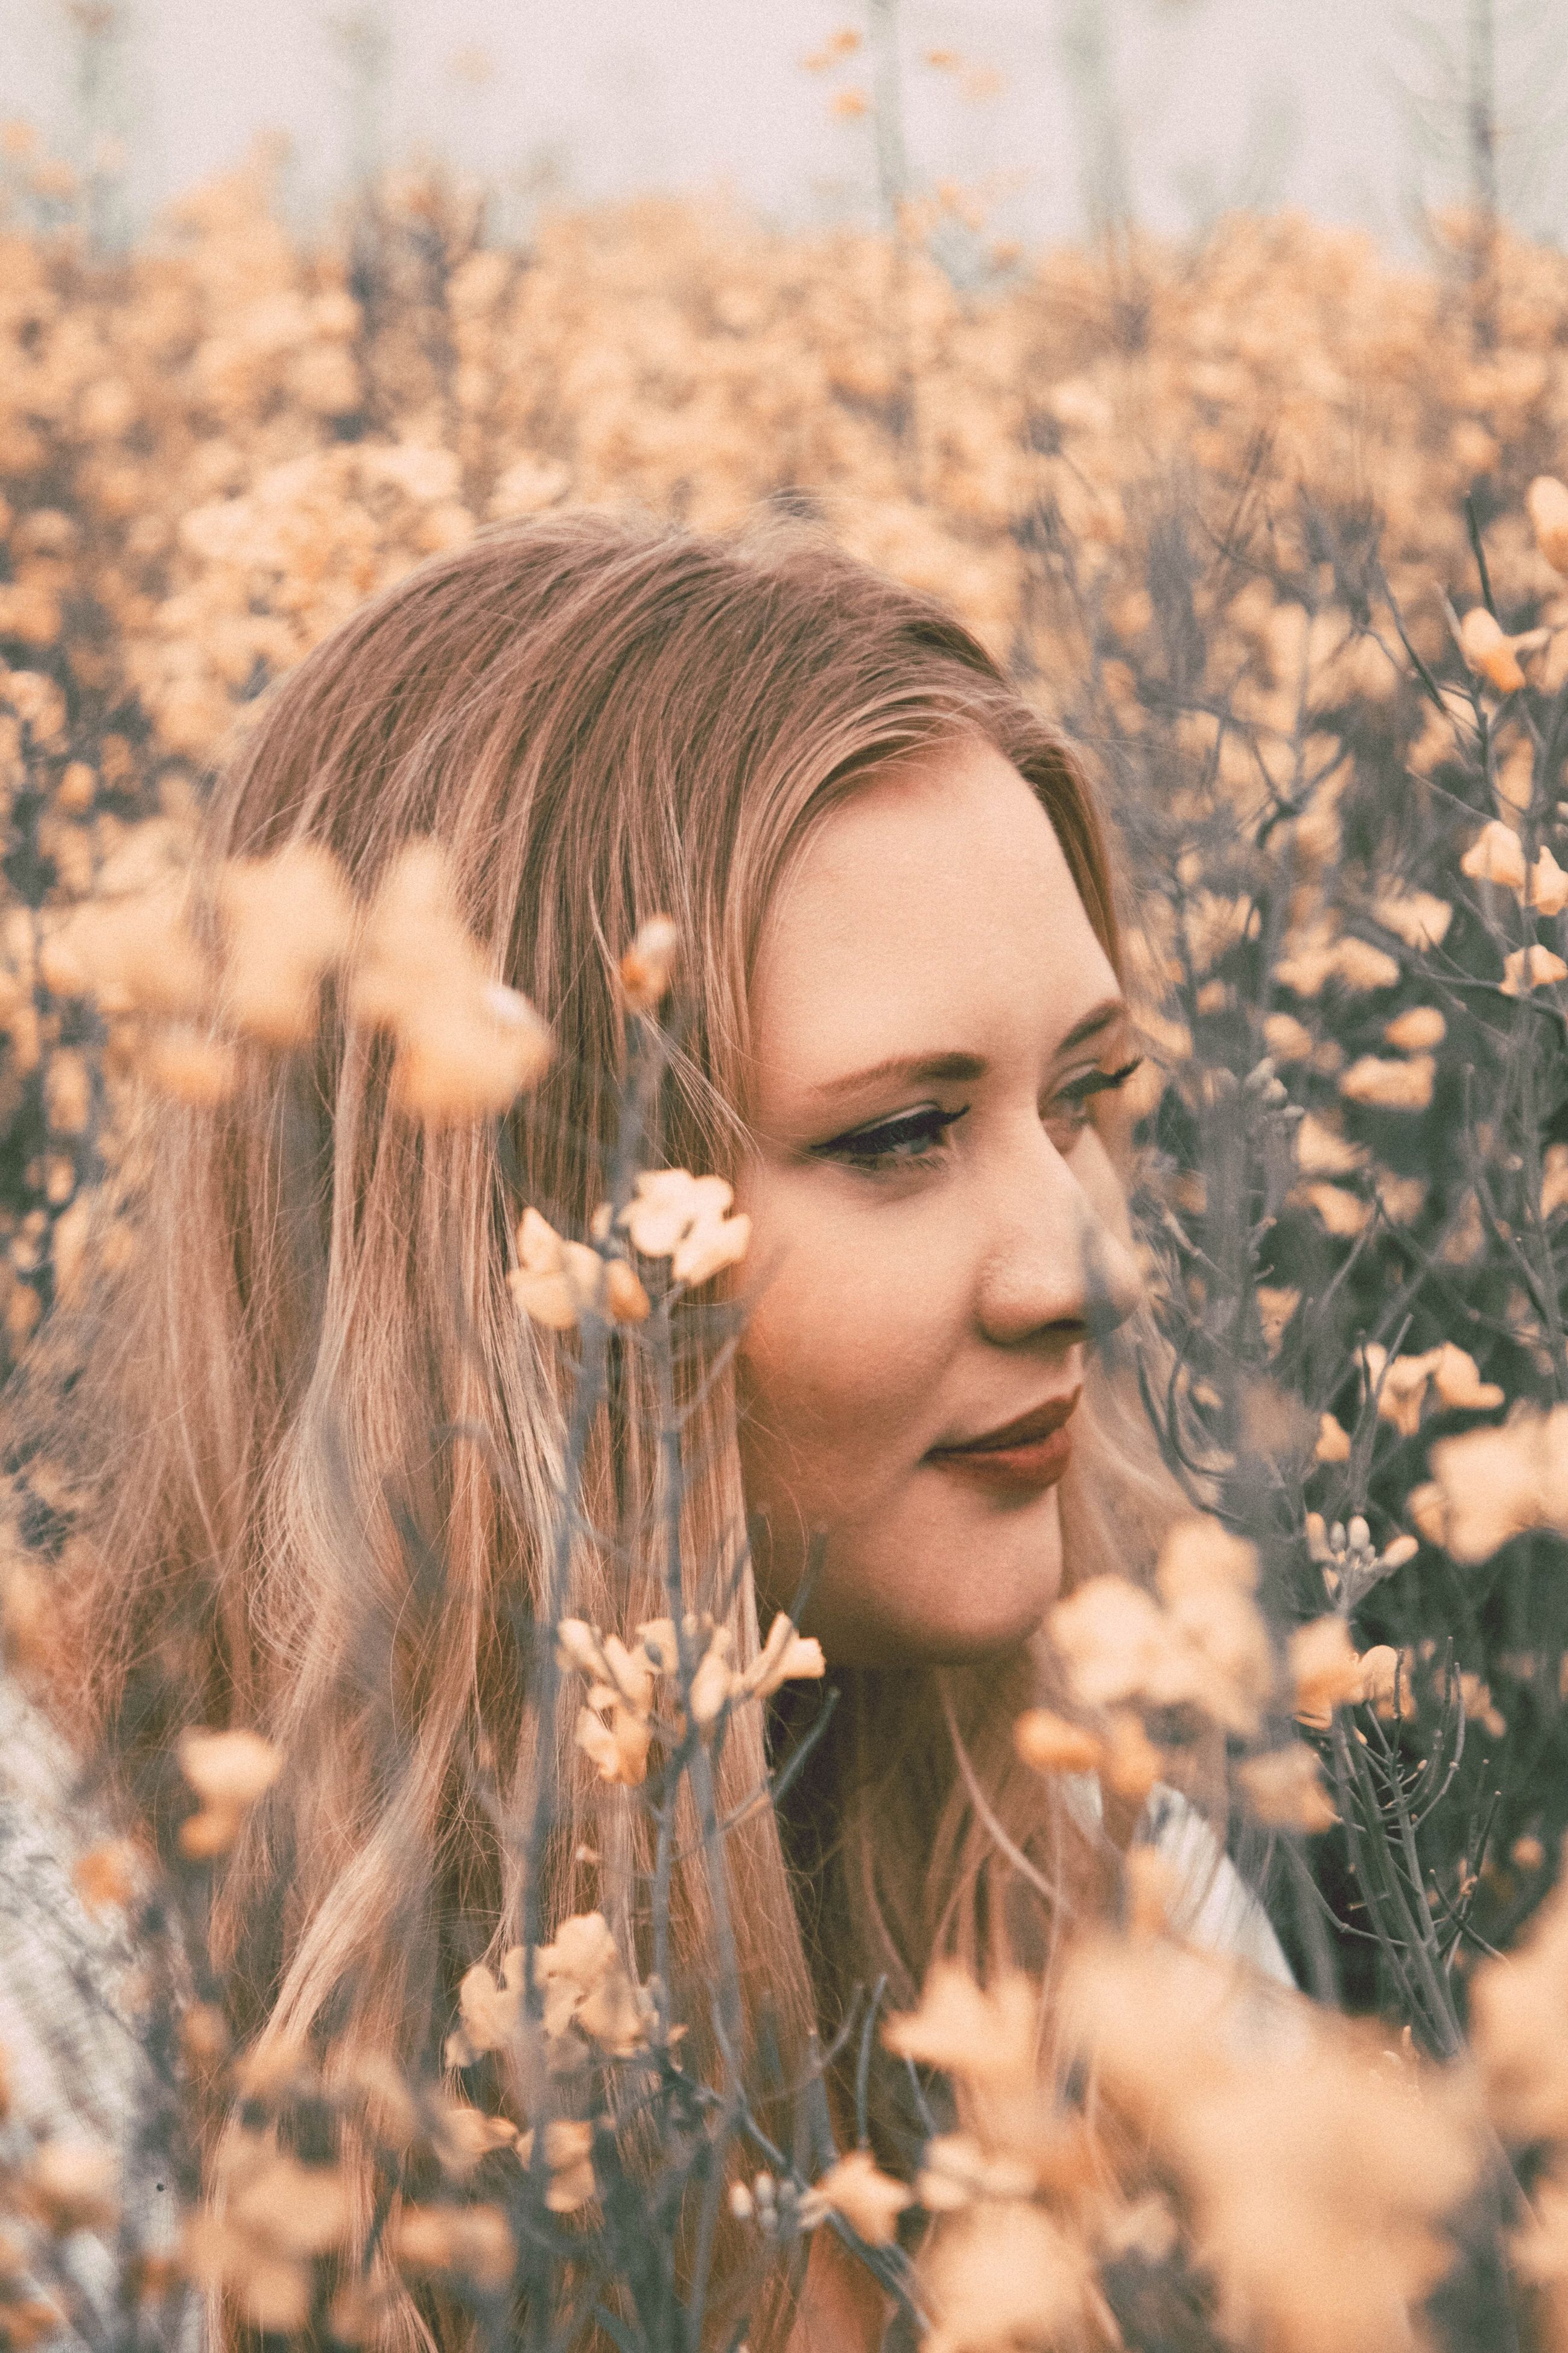 beautiful woman, young adult, young women, one person, nature, field, real people, blond hair, beauty, flower, plant, leisure activity, lifestyles, outdoors, portrait, headshot, timothy grass, day, women, beauty in nature, close-up